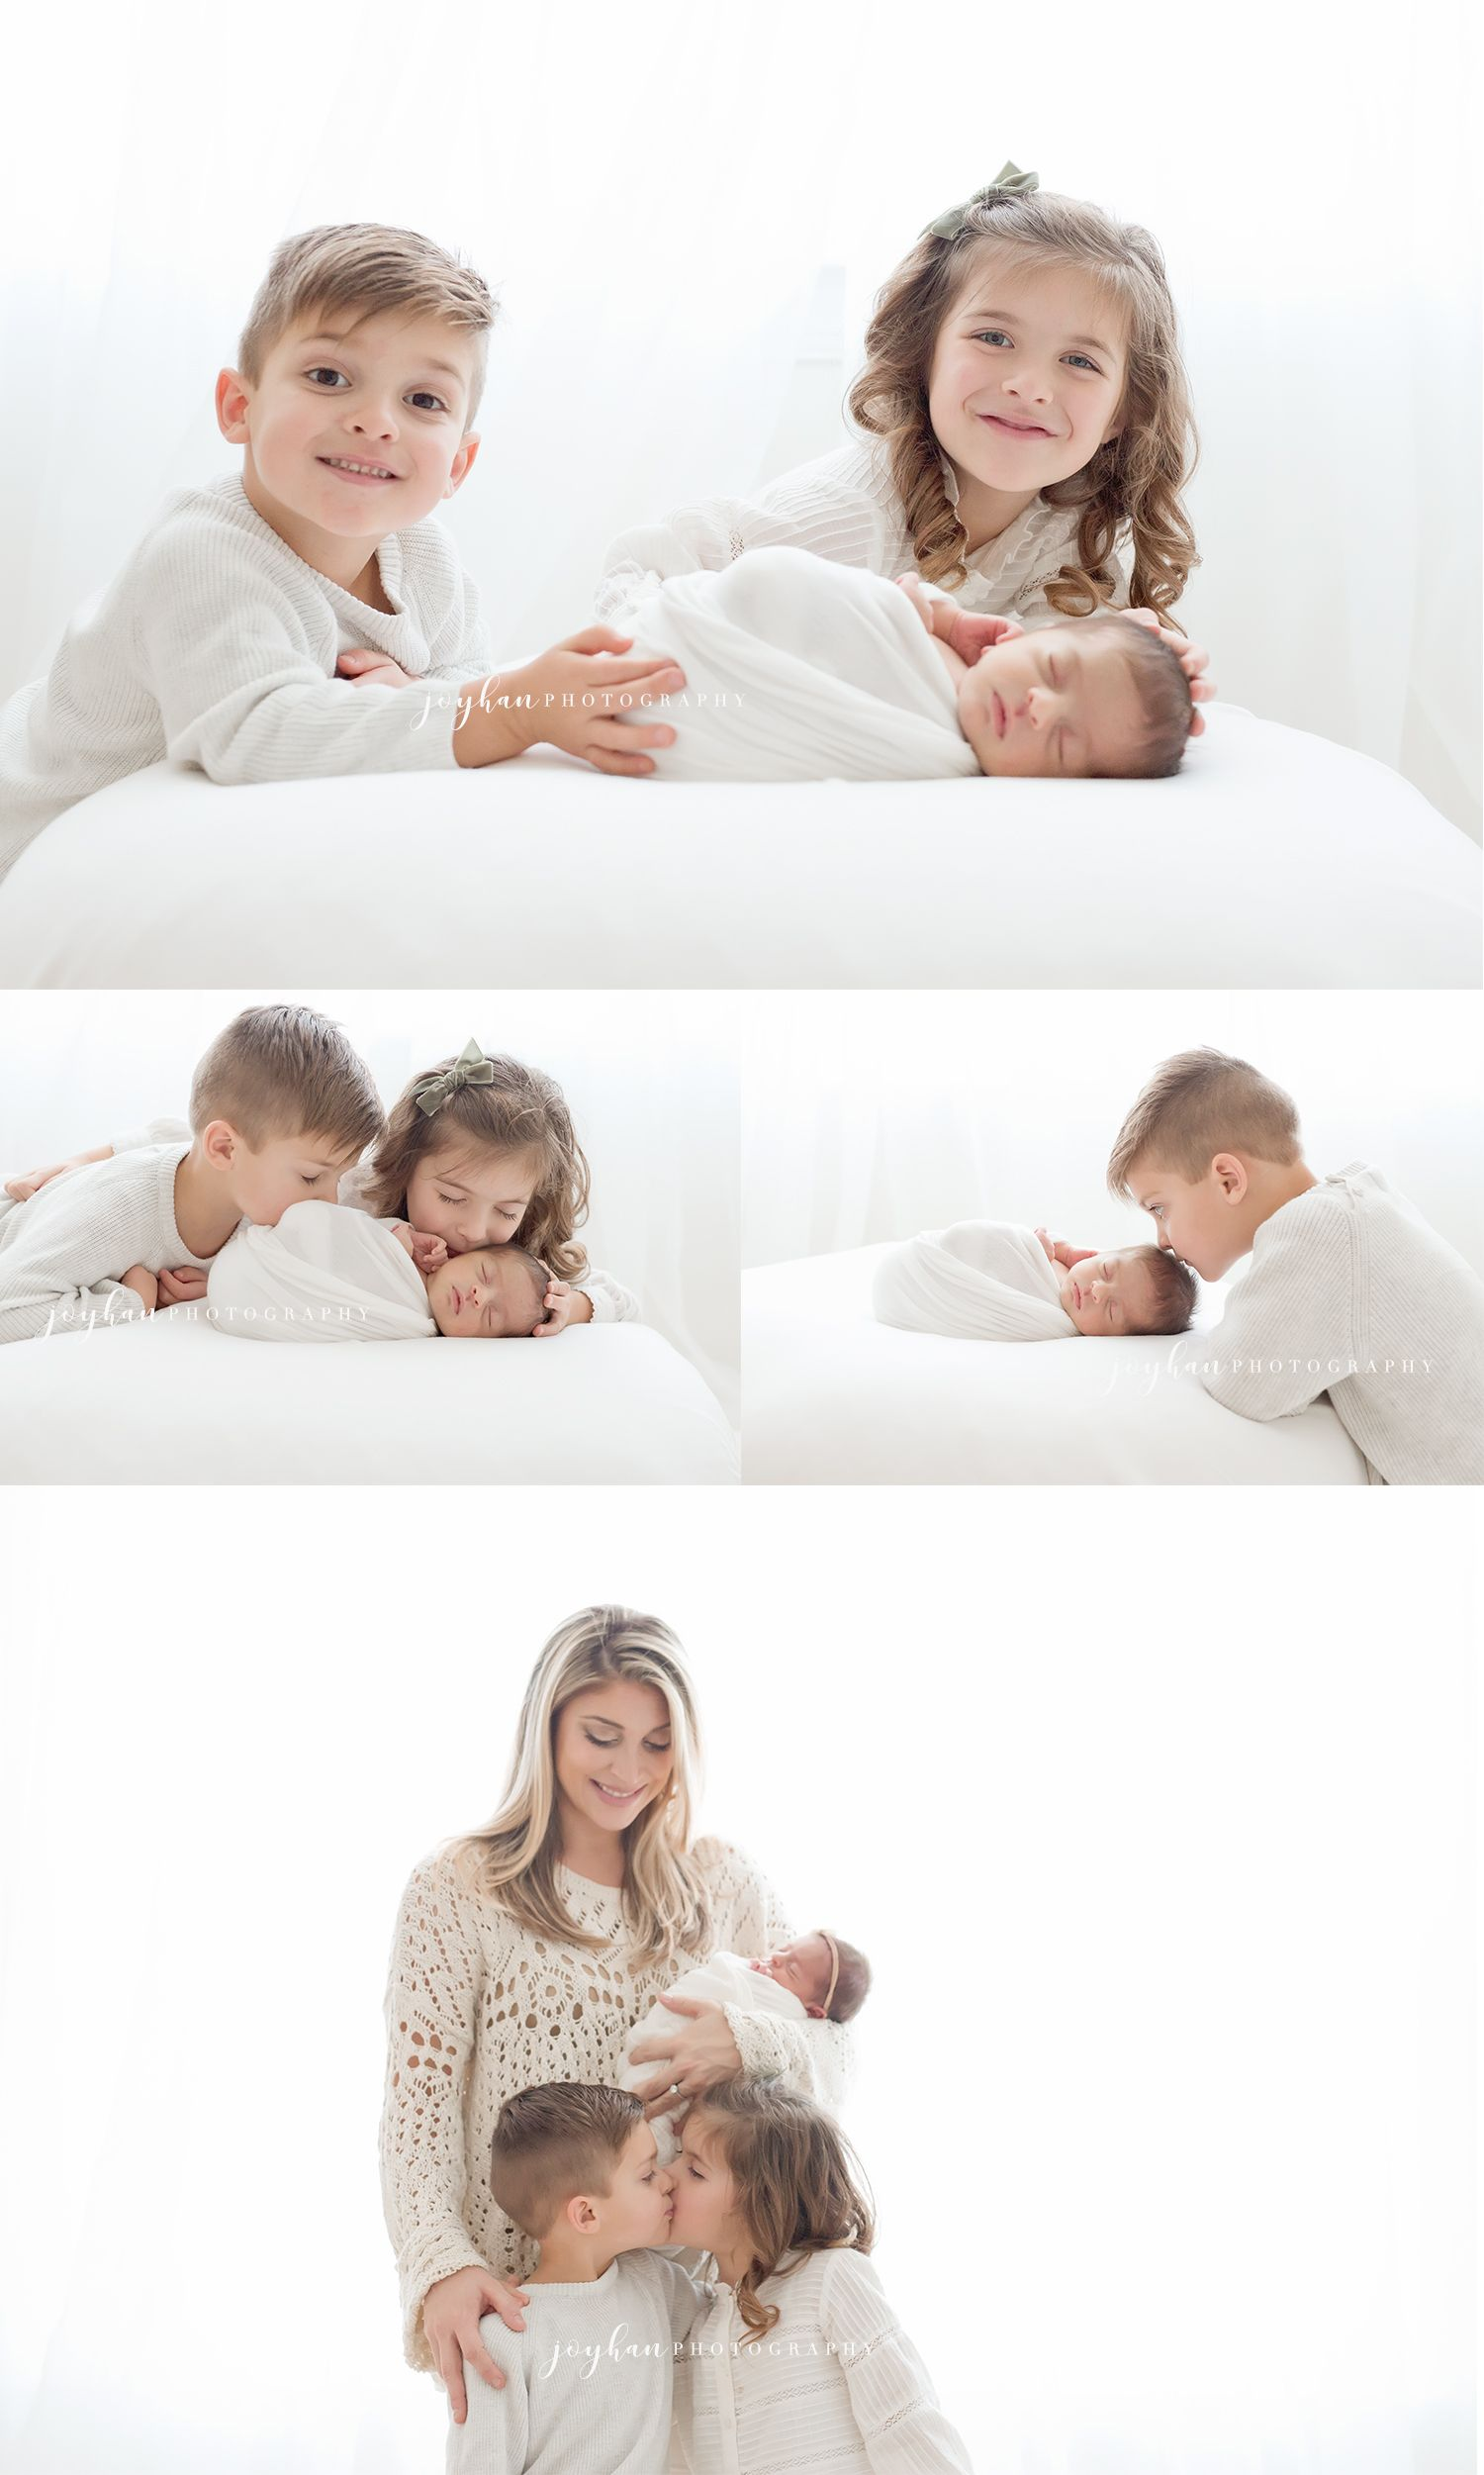 Newborn photography posing ideas for girl newborn photography with sibling studio newborn photography